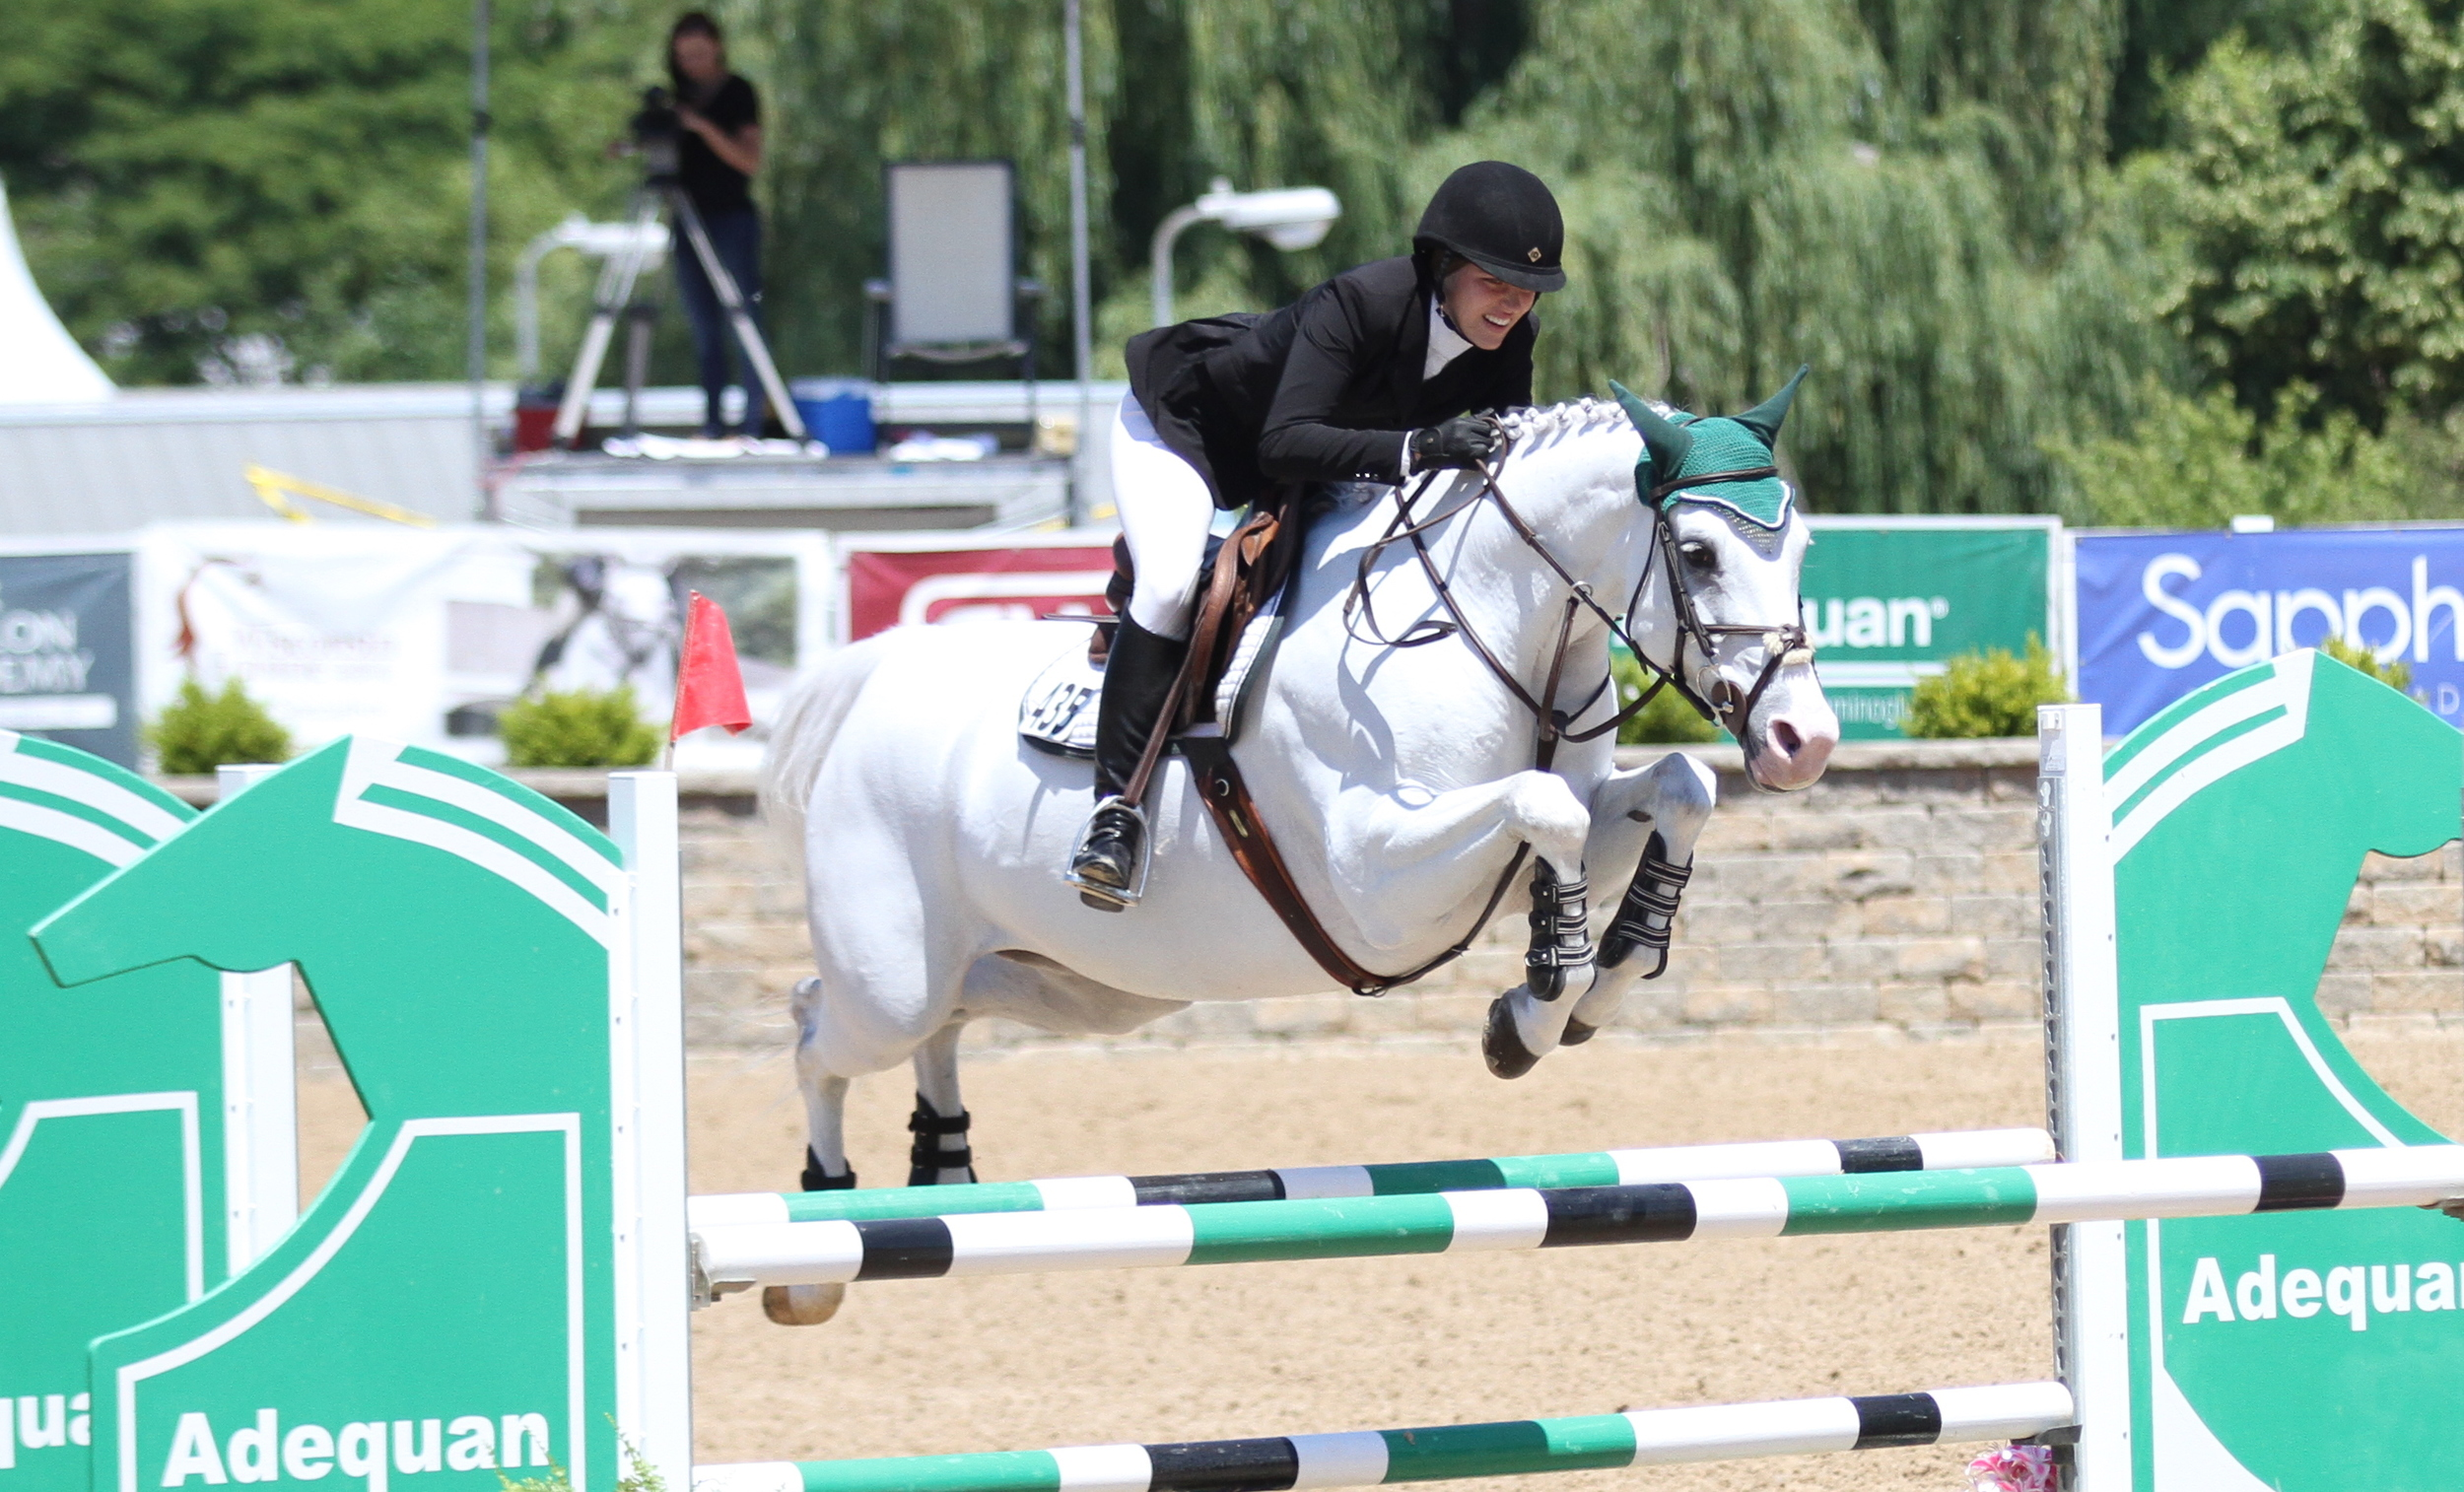 Cassandra Dreams owned and ridden by Olivia Lawton won the class and were champions of the Adult Jumpers     $5,000 NAL Adult Jumper Classic, presented by Wisconsin Equine